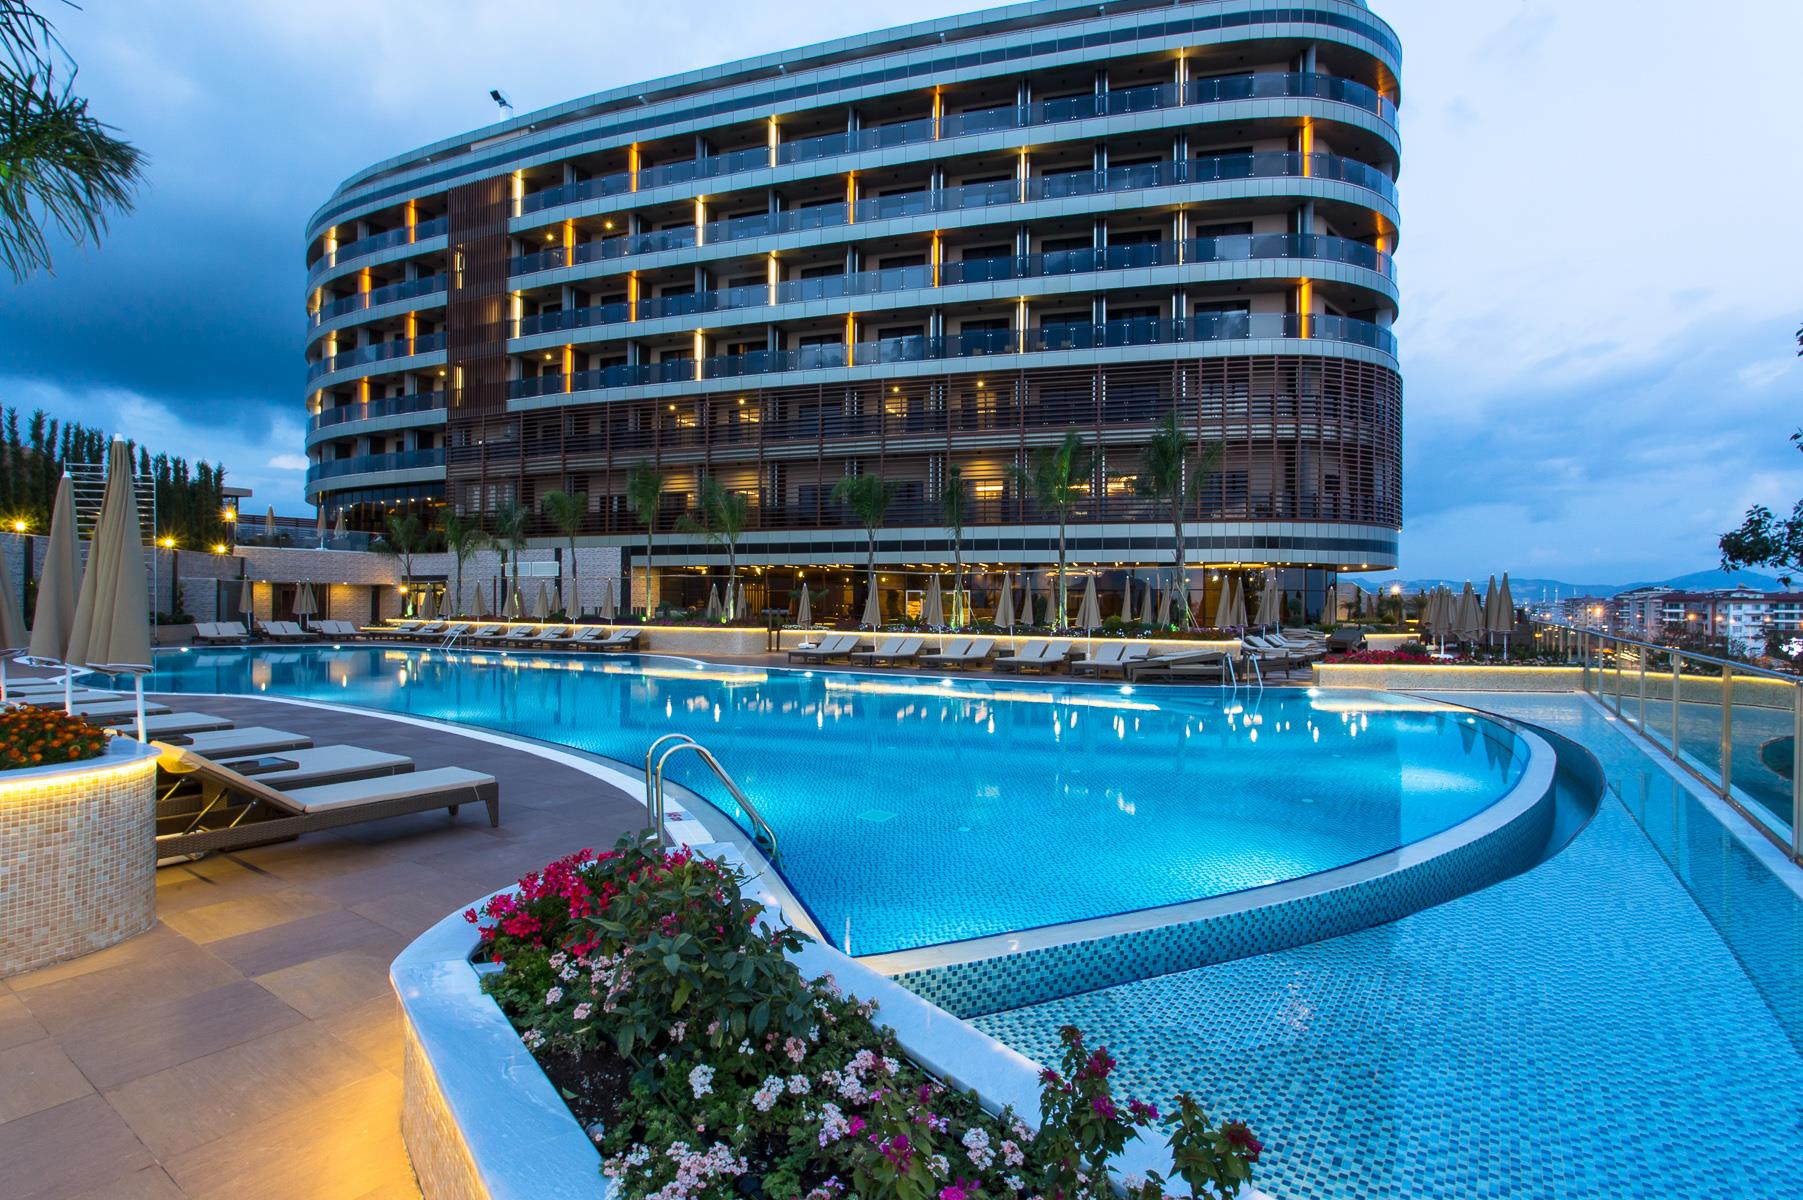 5 Sterren Hotel Michell Amp Spa Adult Only All Inclusive